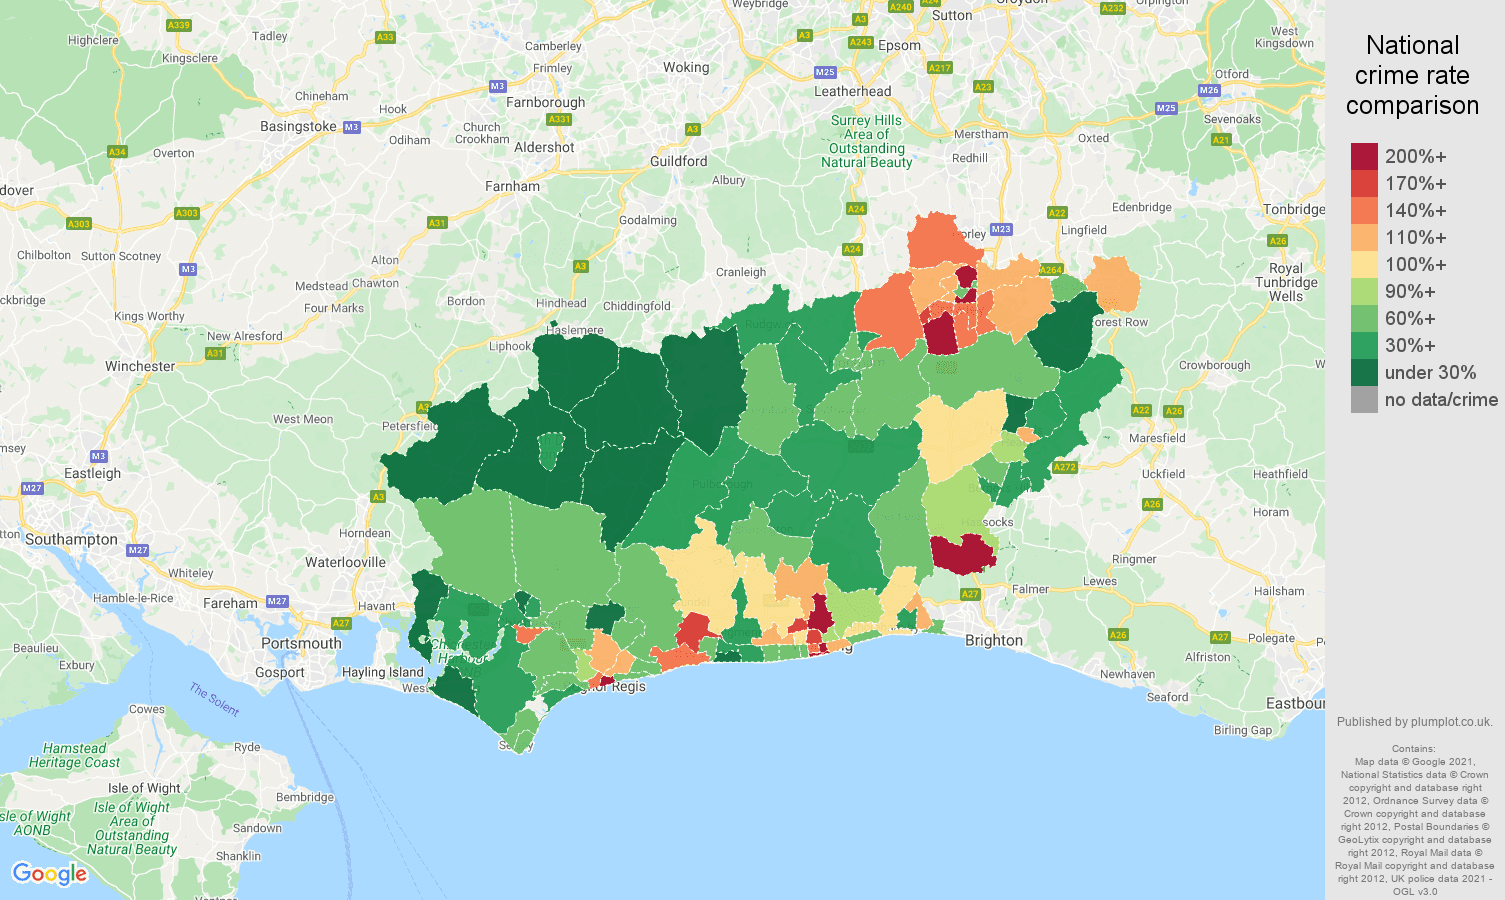 West Sussex drugs crime rate comparison map